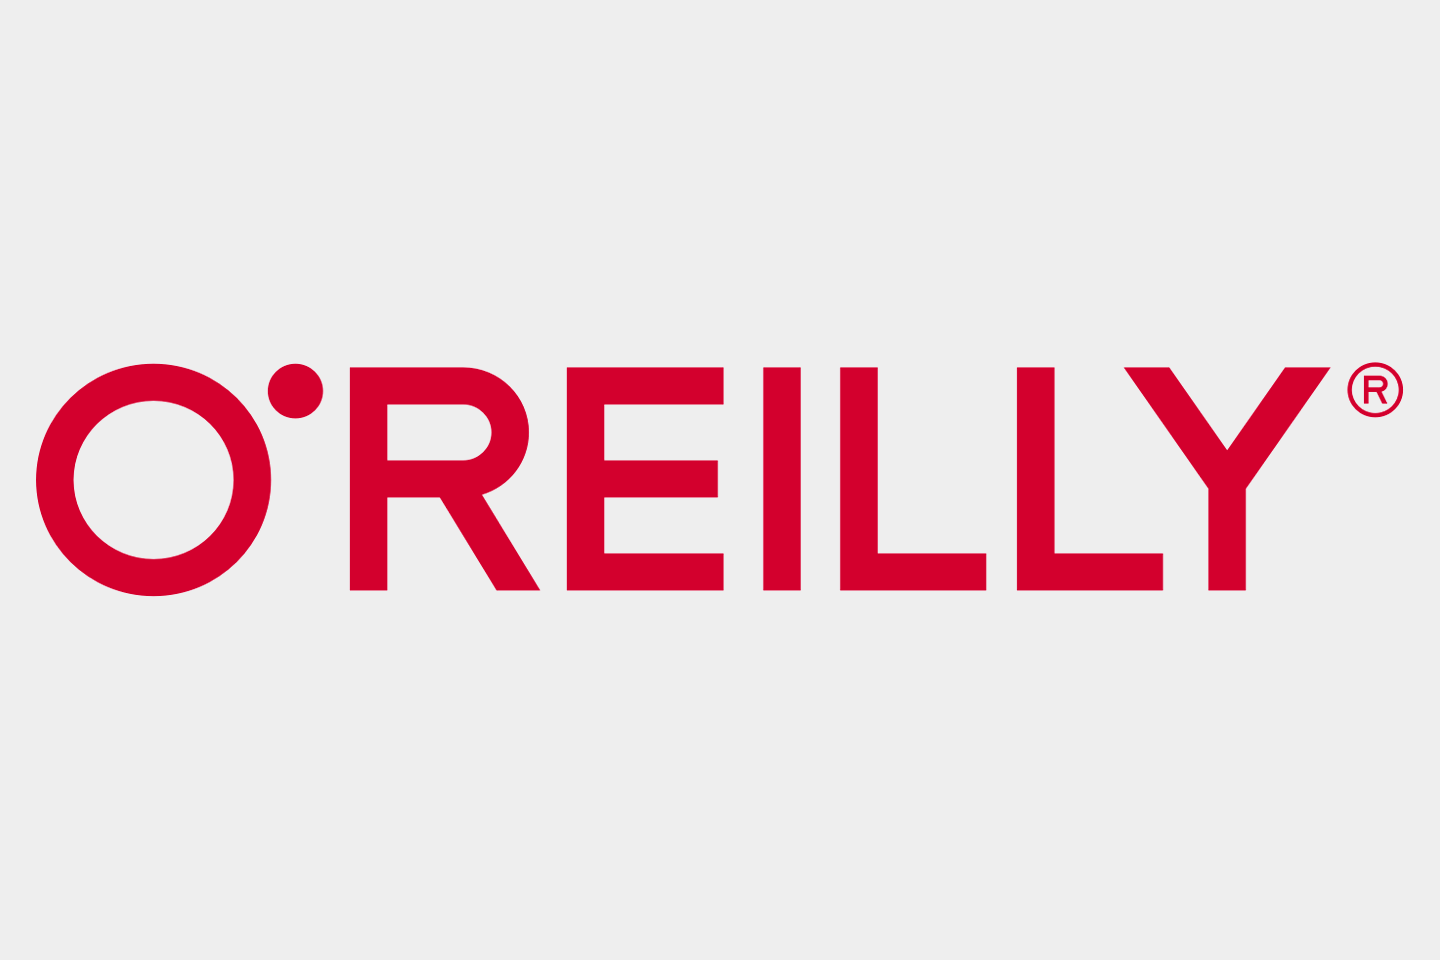 The mission of spreading the knowledge of innovators continues – O'Reilly